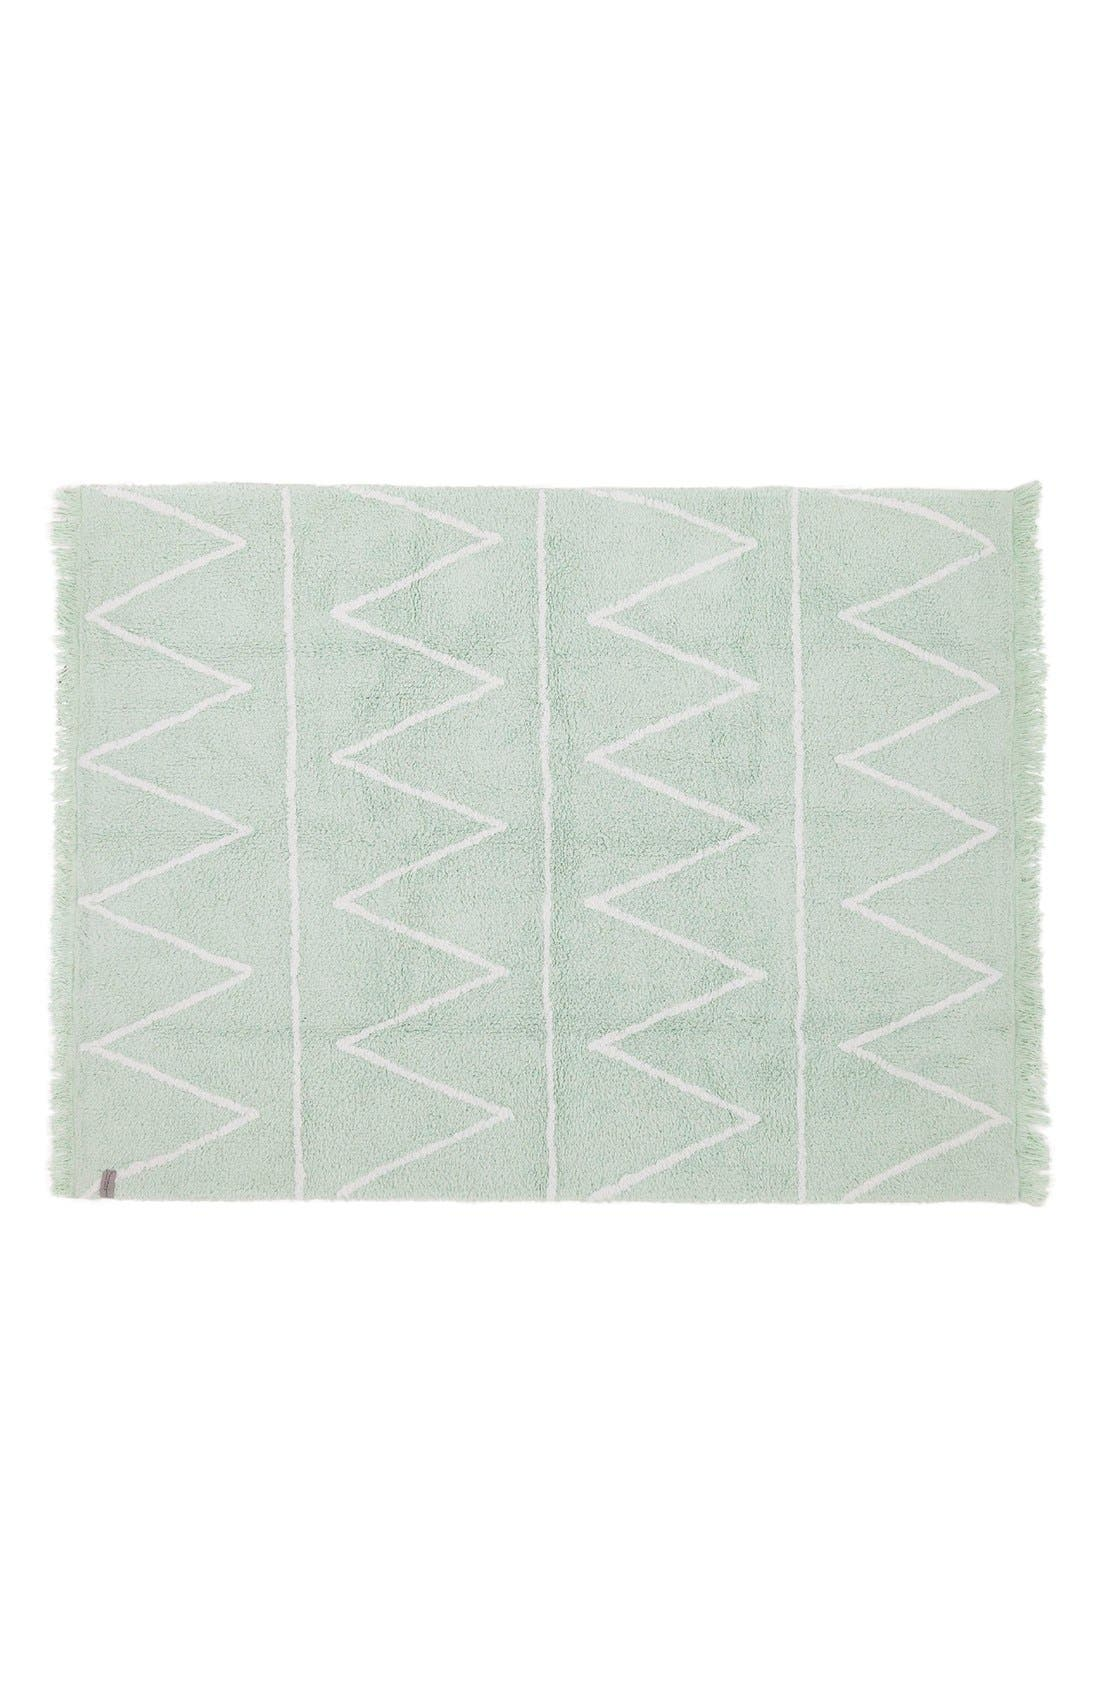 Lorena Canals Hippy Rug